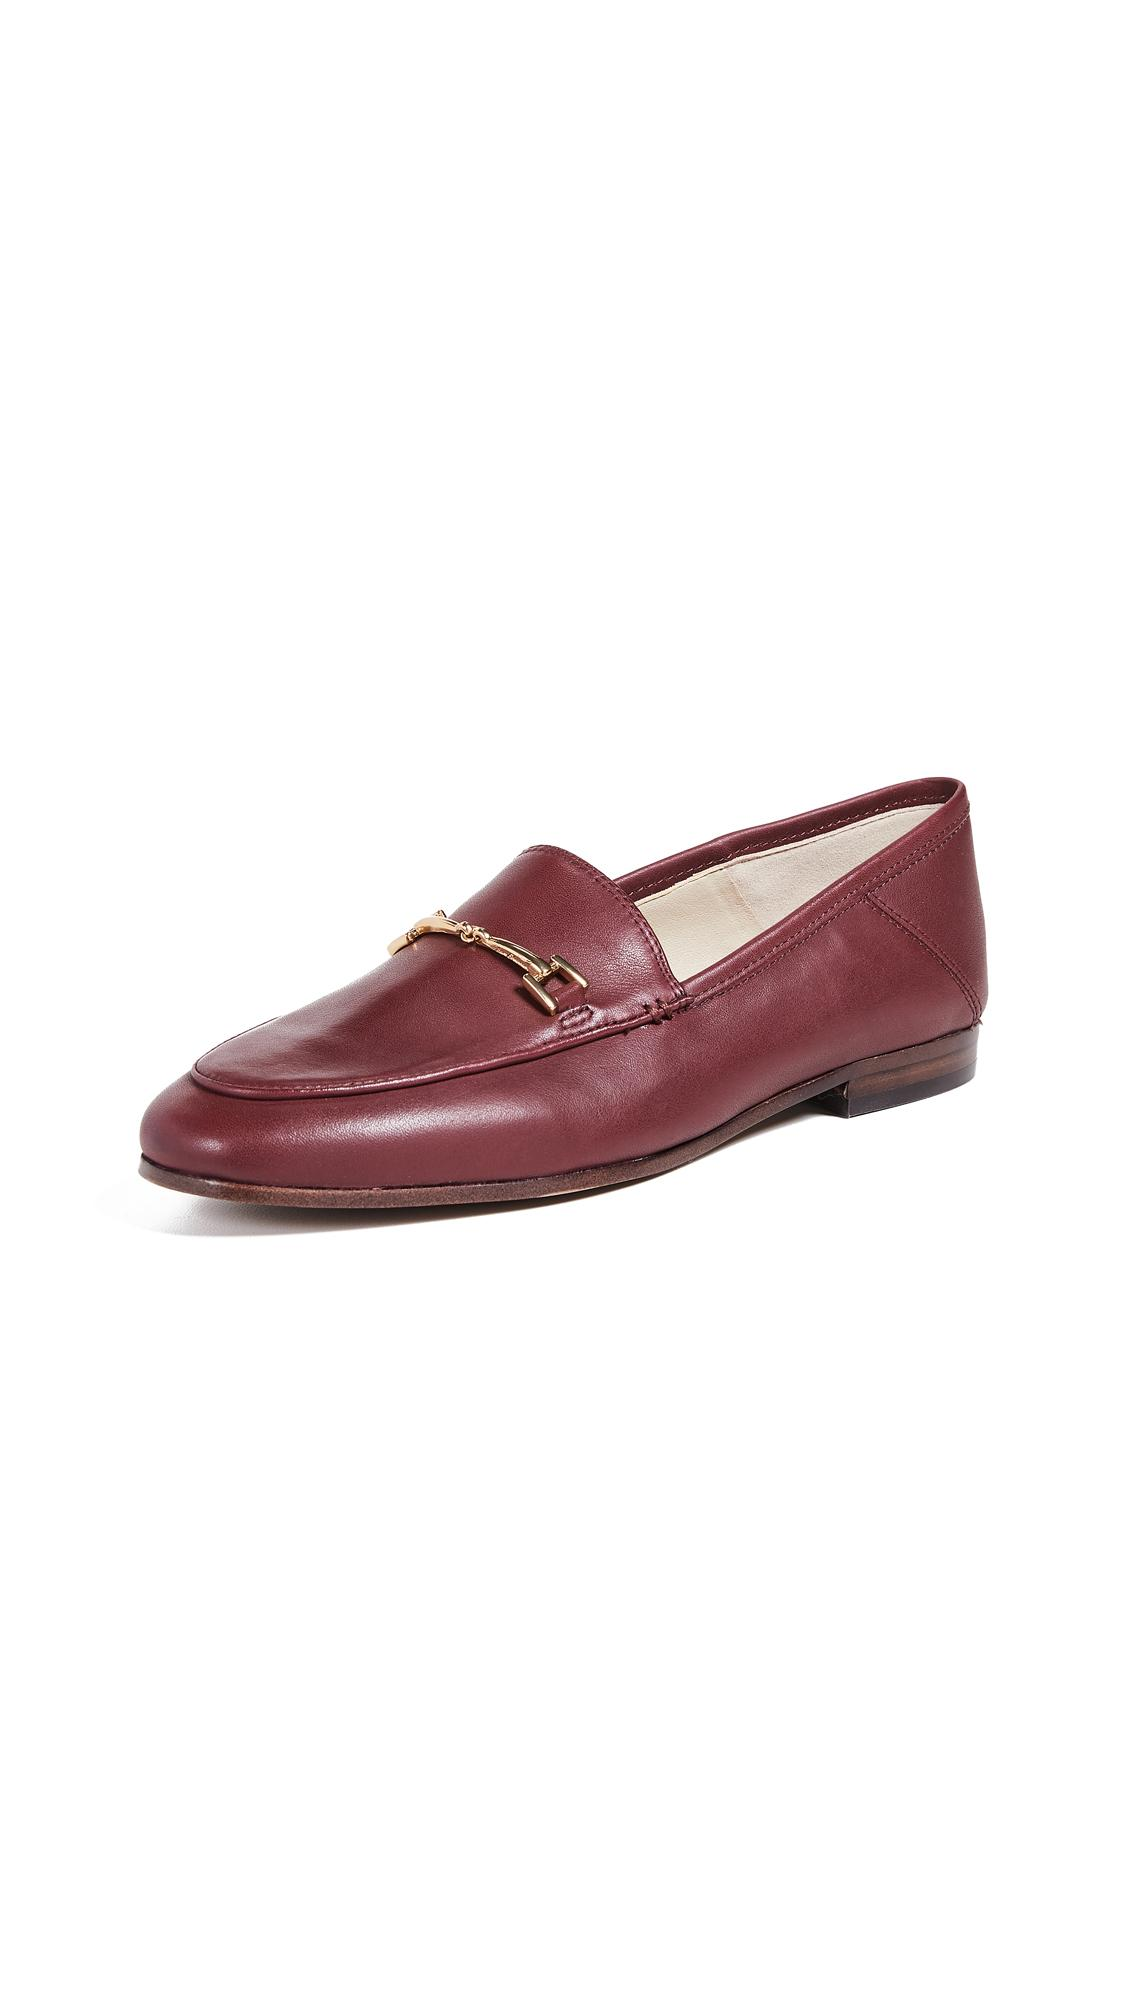 998cae7d53d Sam Edelman Loraine Burgundy Leather Loafers In Beet Red